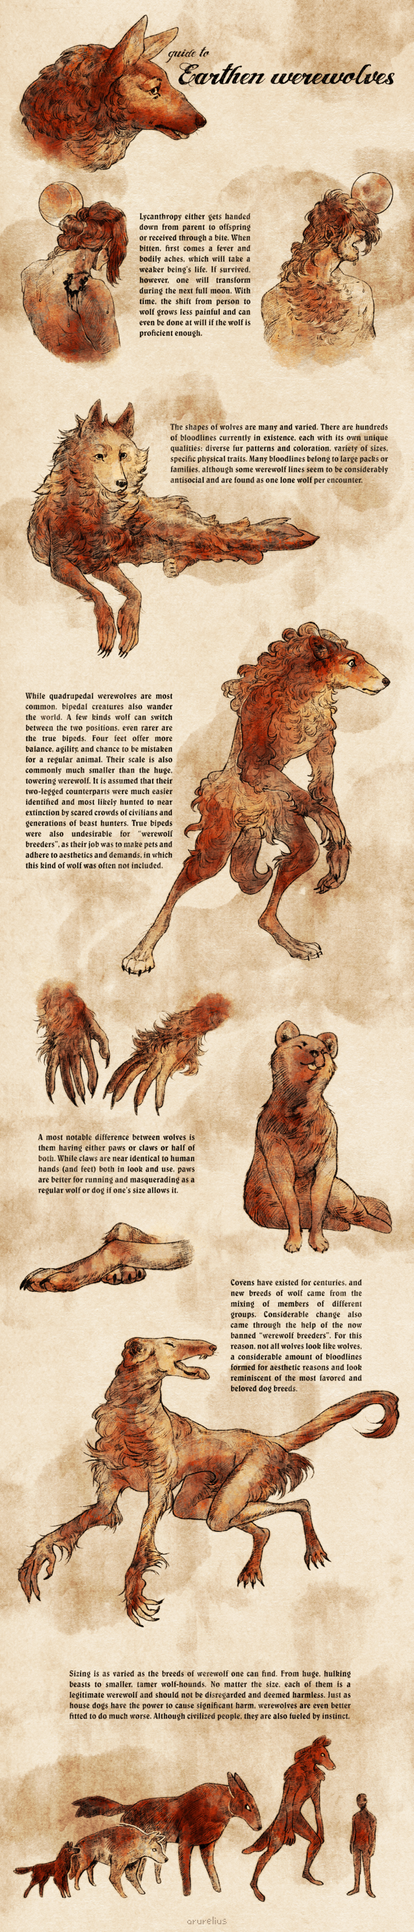 Guide to Earthen werewolves by arurelius